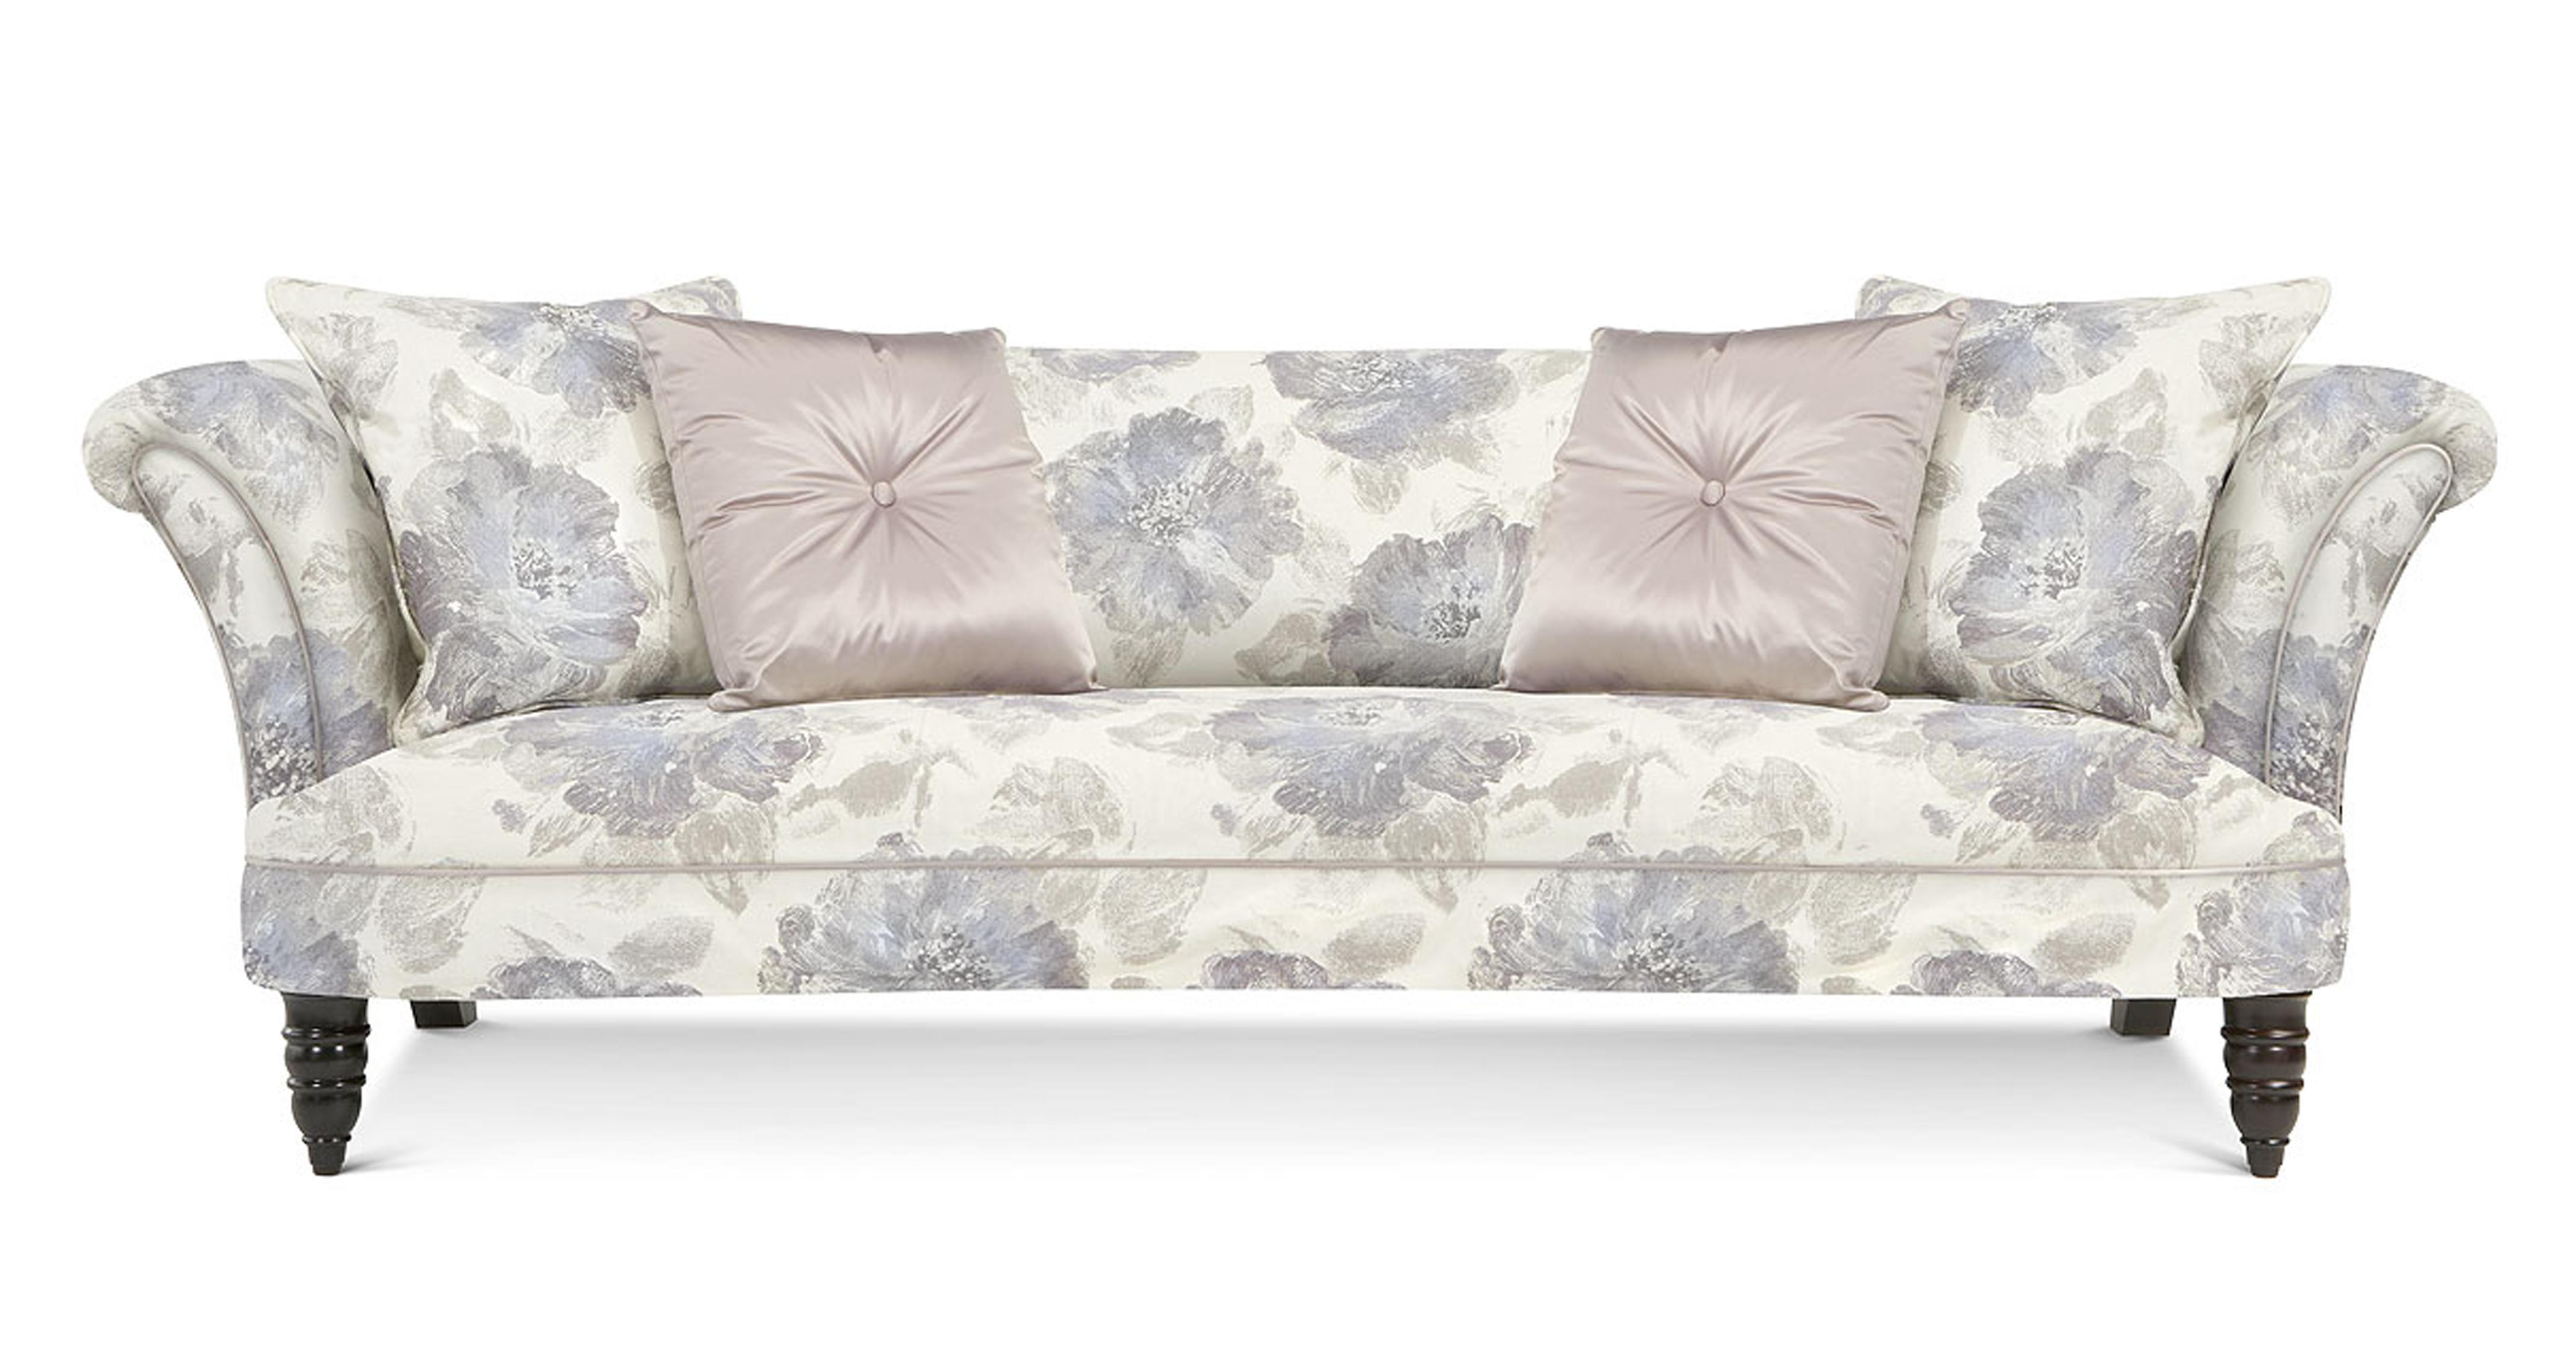 Concerto Pattern 4 Seater Sofa Concerto Pattern Dfs